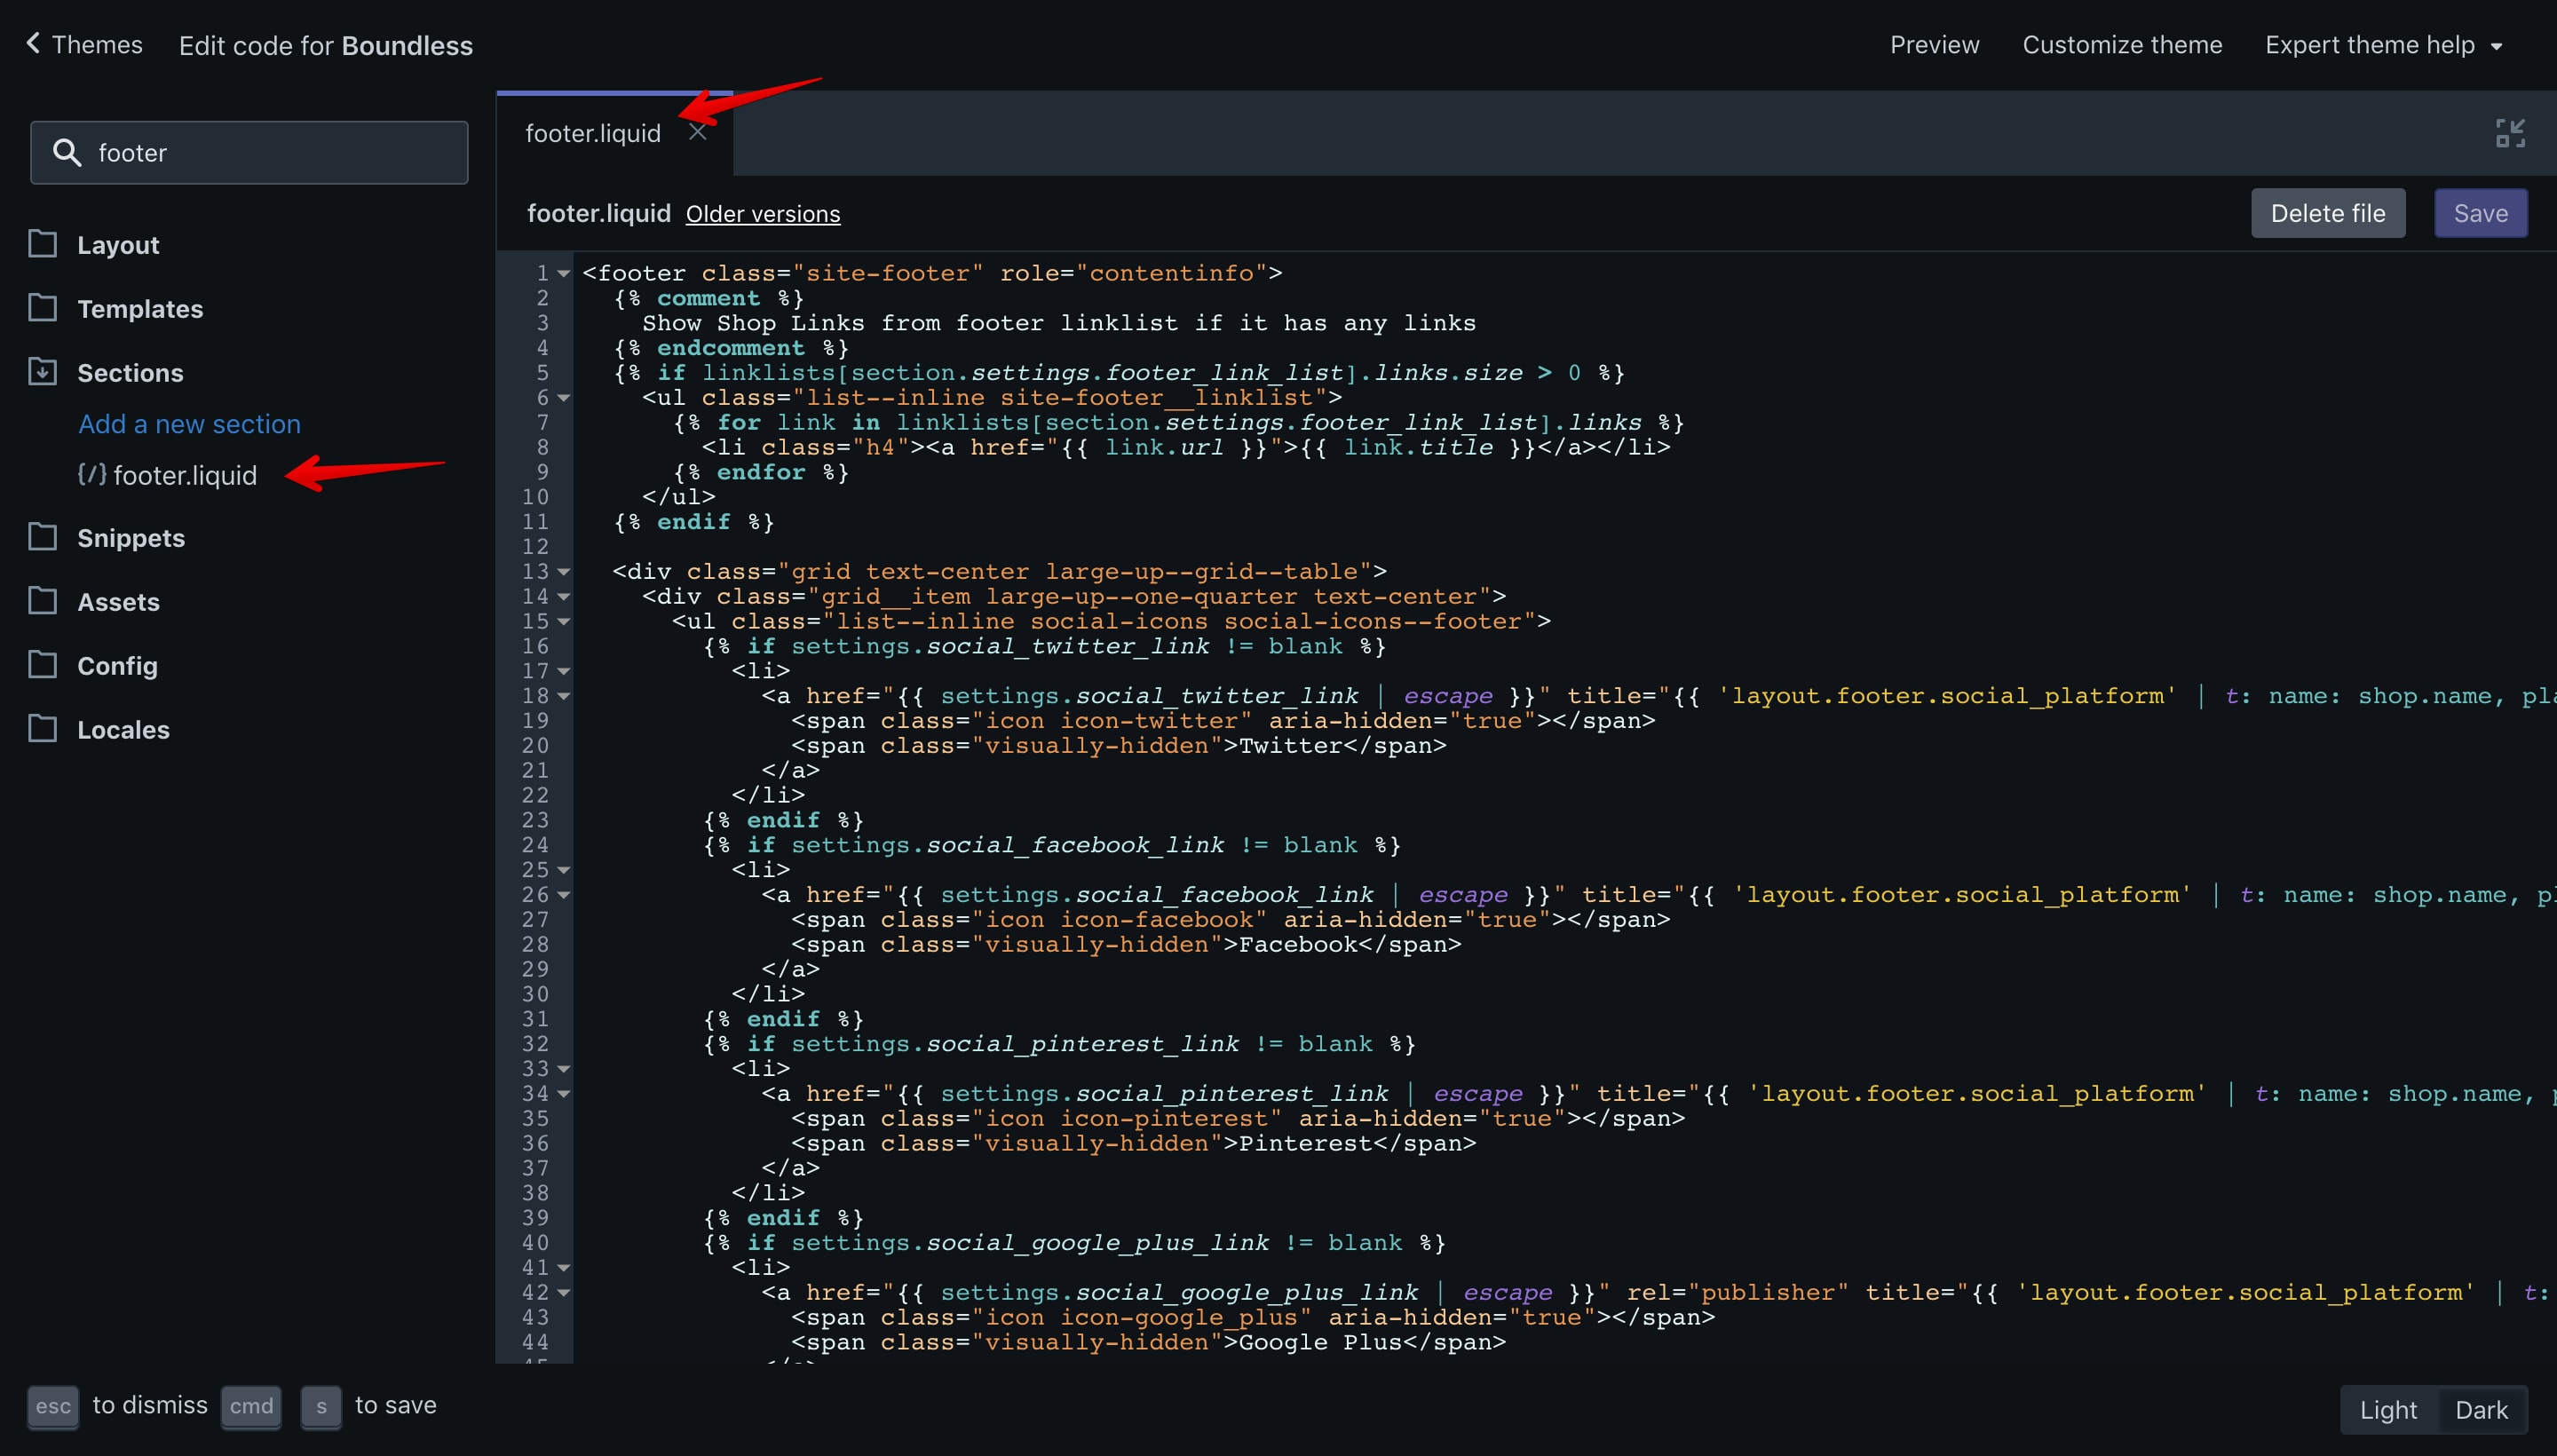 """Boundless theme """"footer.liquid"""" file opened in the code editor"""